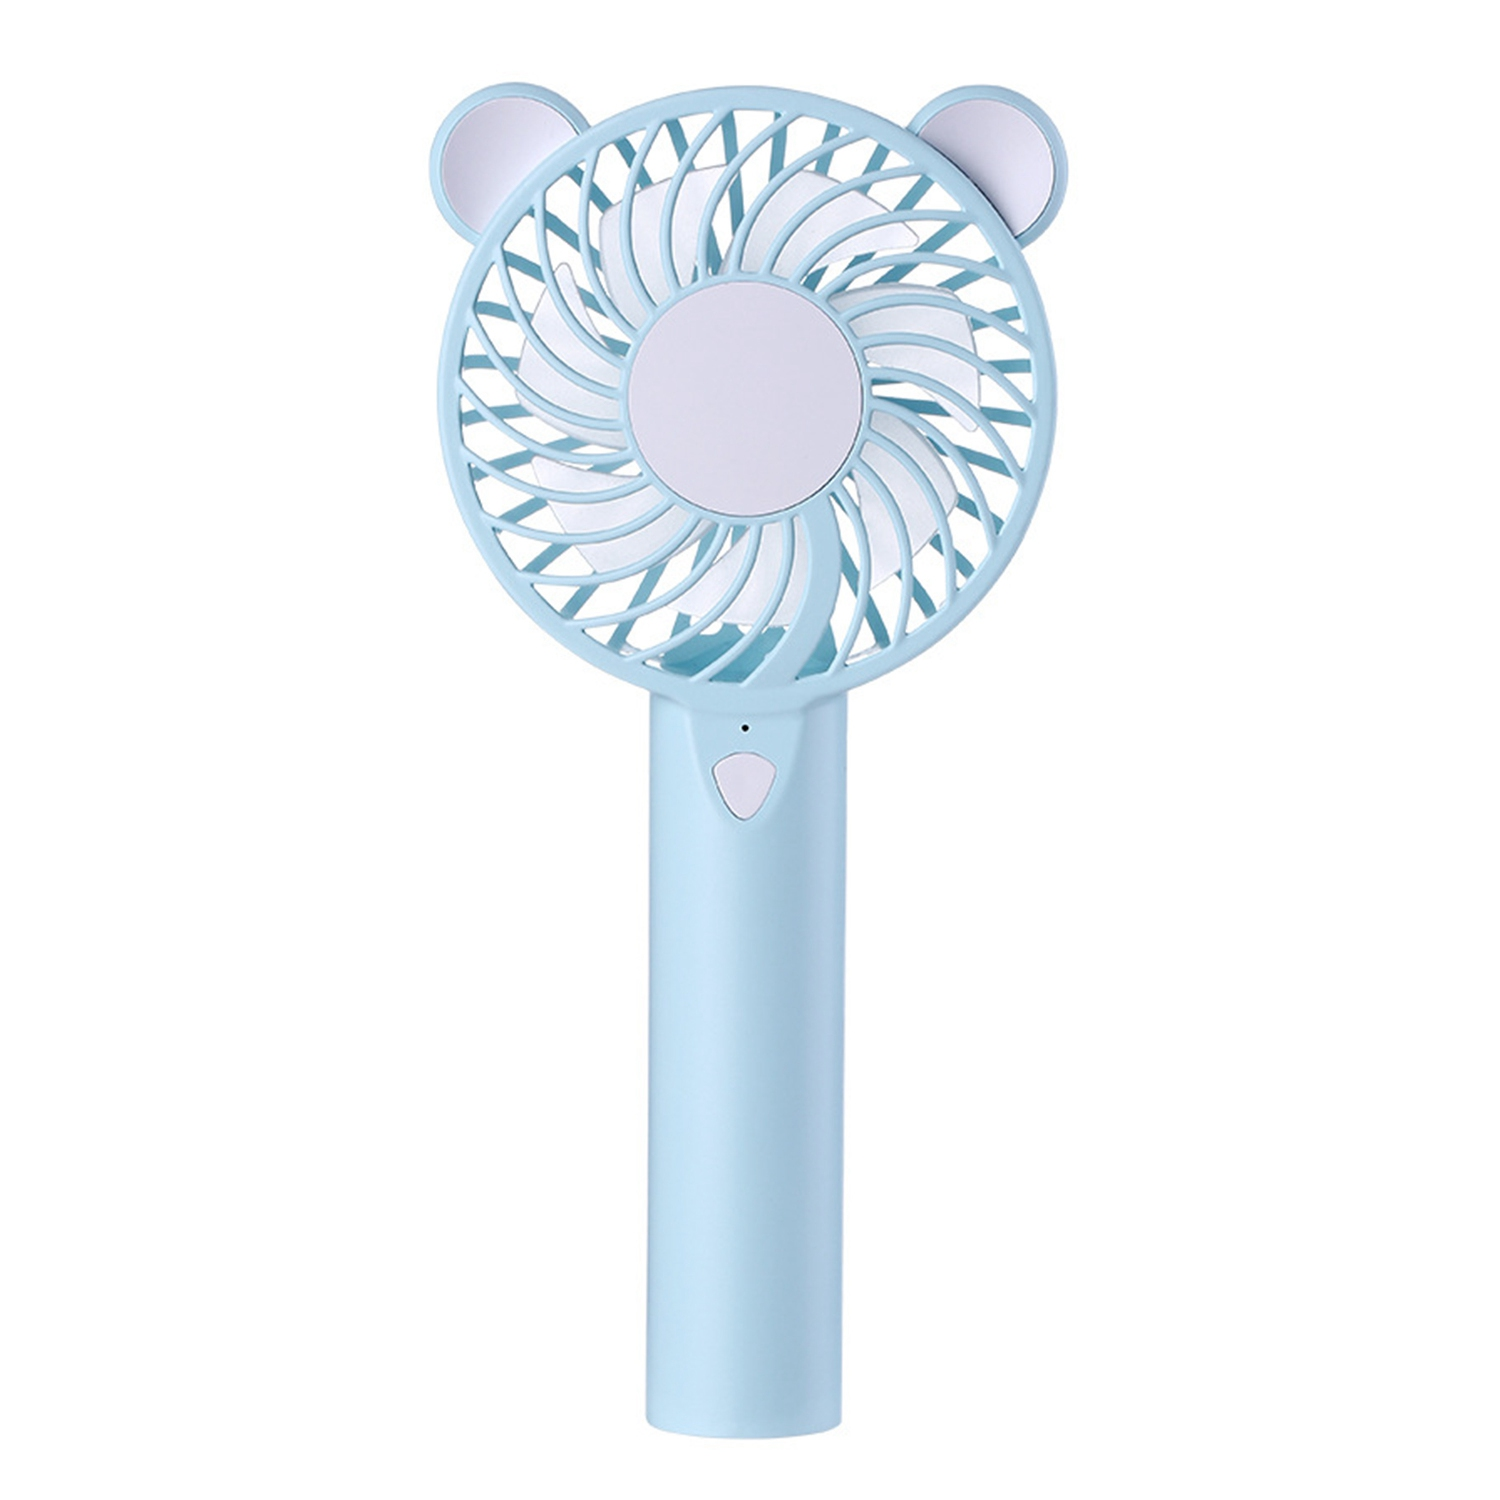 Best Sell Cute Mini Portable Handheld Cooling Fan & Usb Rechargeable Desk Quiet Air CoolerBest Sell Cute Mini Portable Handheld Cooling Fan & Usb Rechargeable Desk Quiet Air Cooler